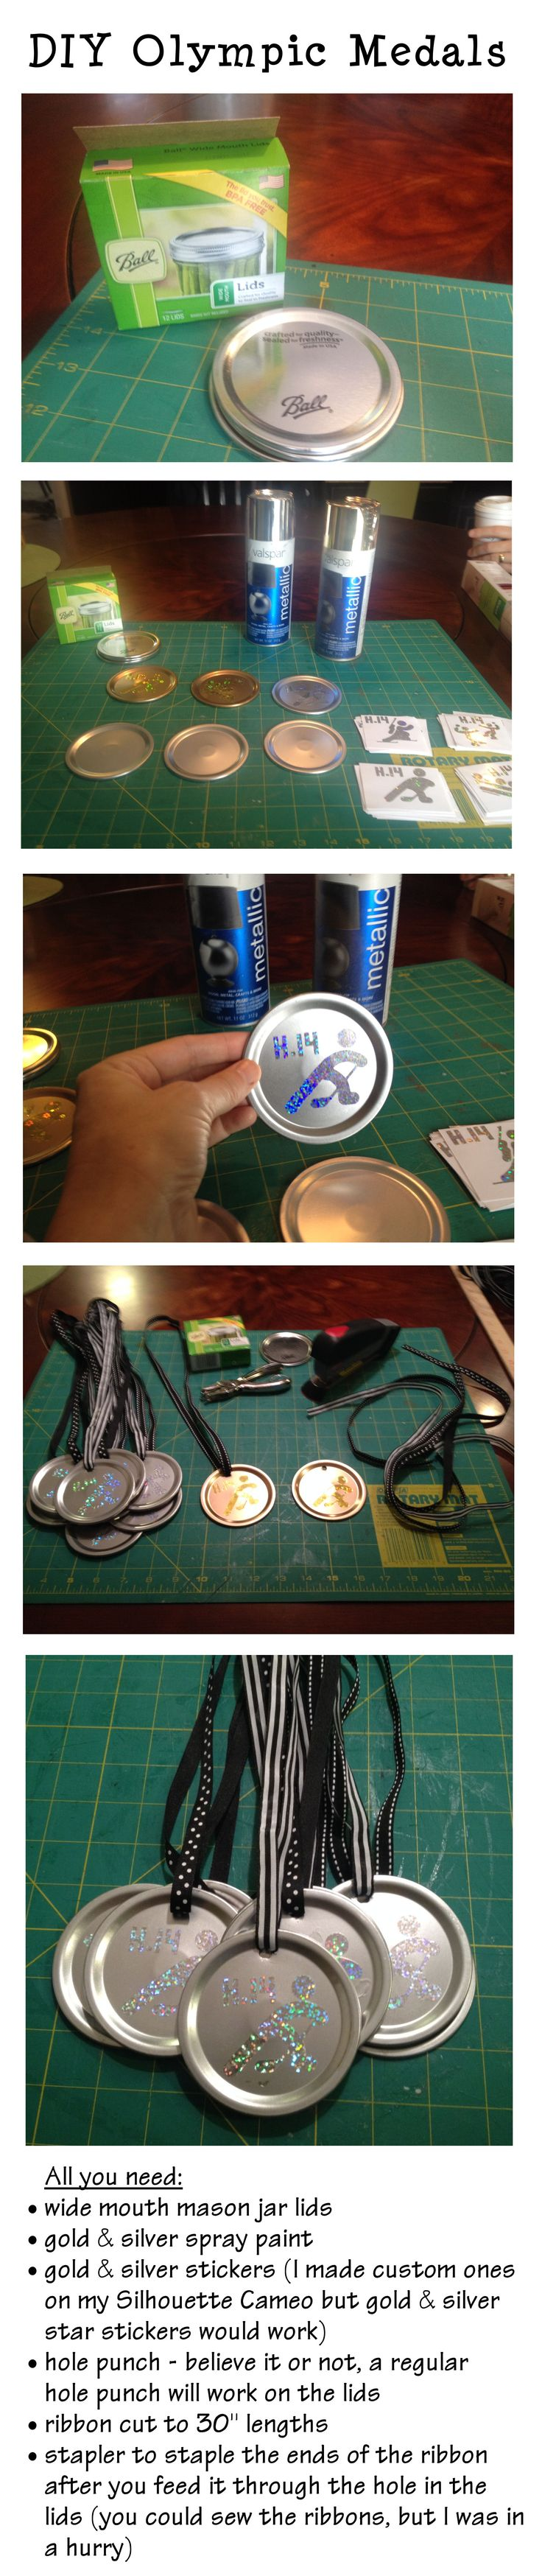 """Cheap and easy DIY Olympic Medals - For my daughter's Winter Olympics-themed birthday party, we planned """"events"""" - knee hockey, team snowball fight, etc - and awarded these DIY Olympic Medals."""